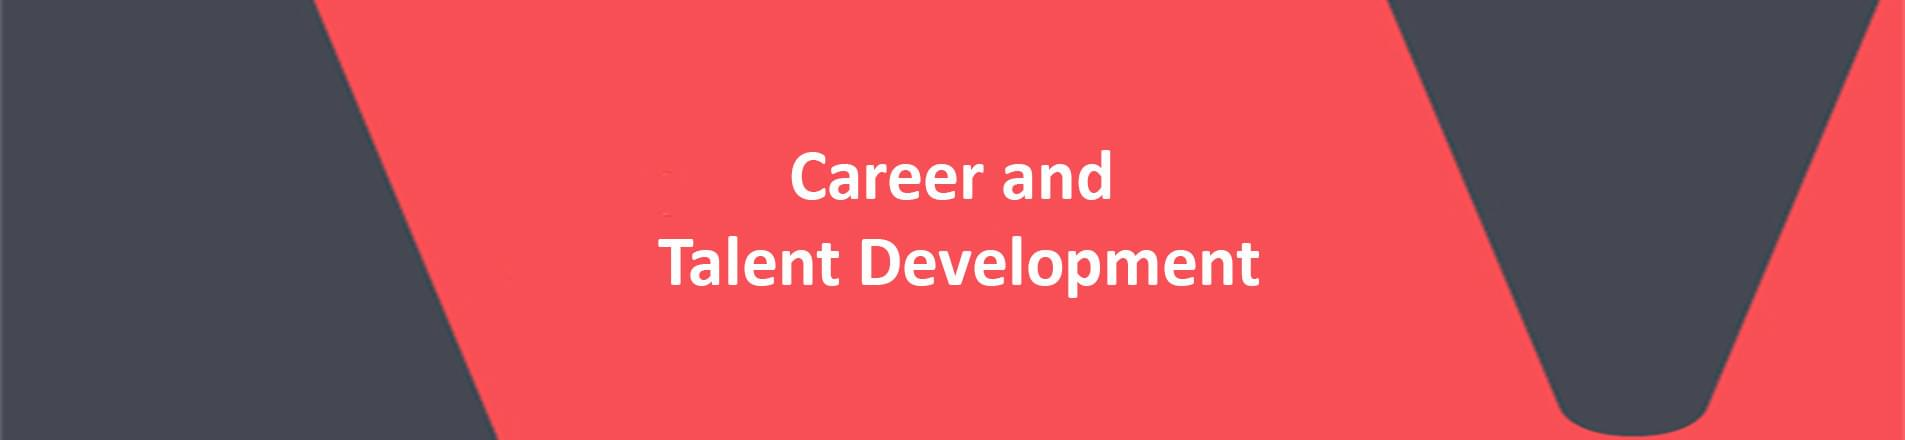 "Image VERCIDA banner.  Red background with ""Career and Talent Development"" spelled in white letters."